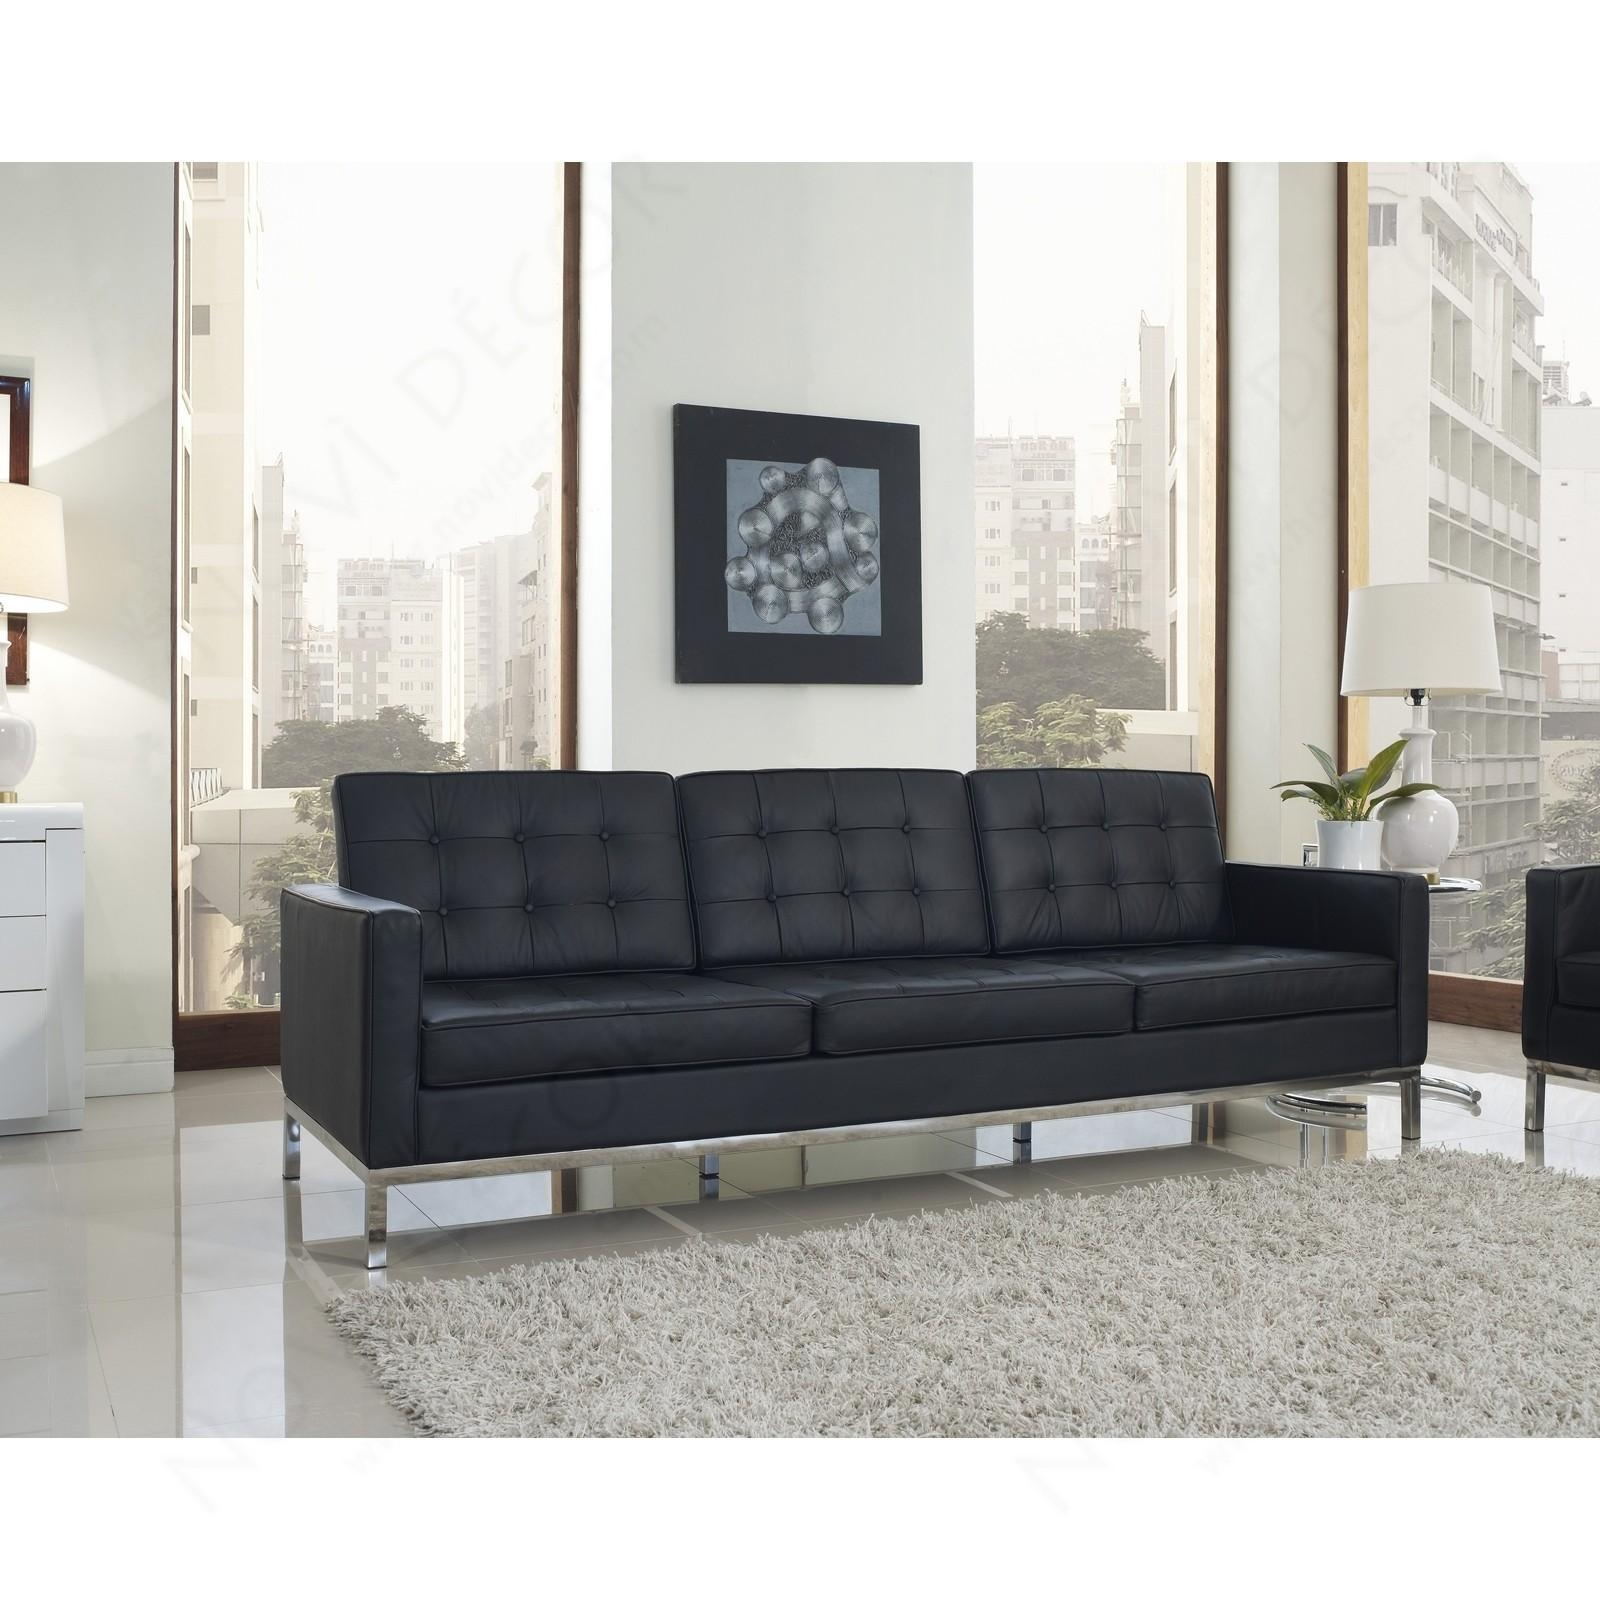 Sofas Center : Florence Knoll Sofa Leather And Chrome Plated Steel Within Florence Knoll Leather Sofas (Image 19 of 20)